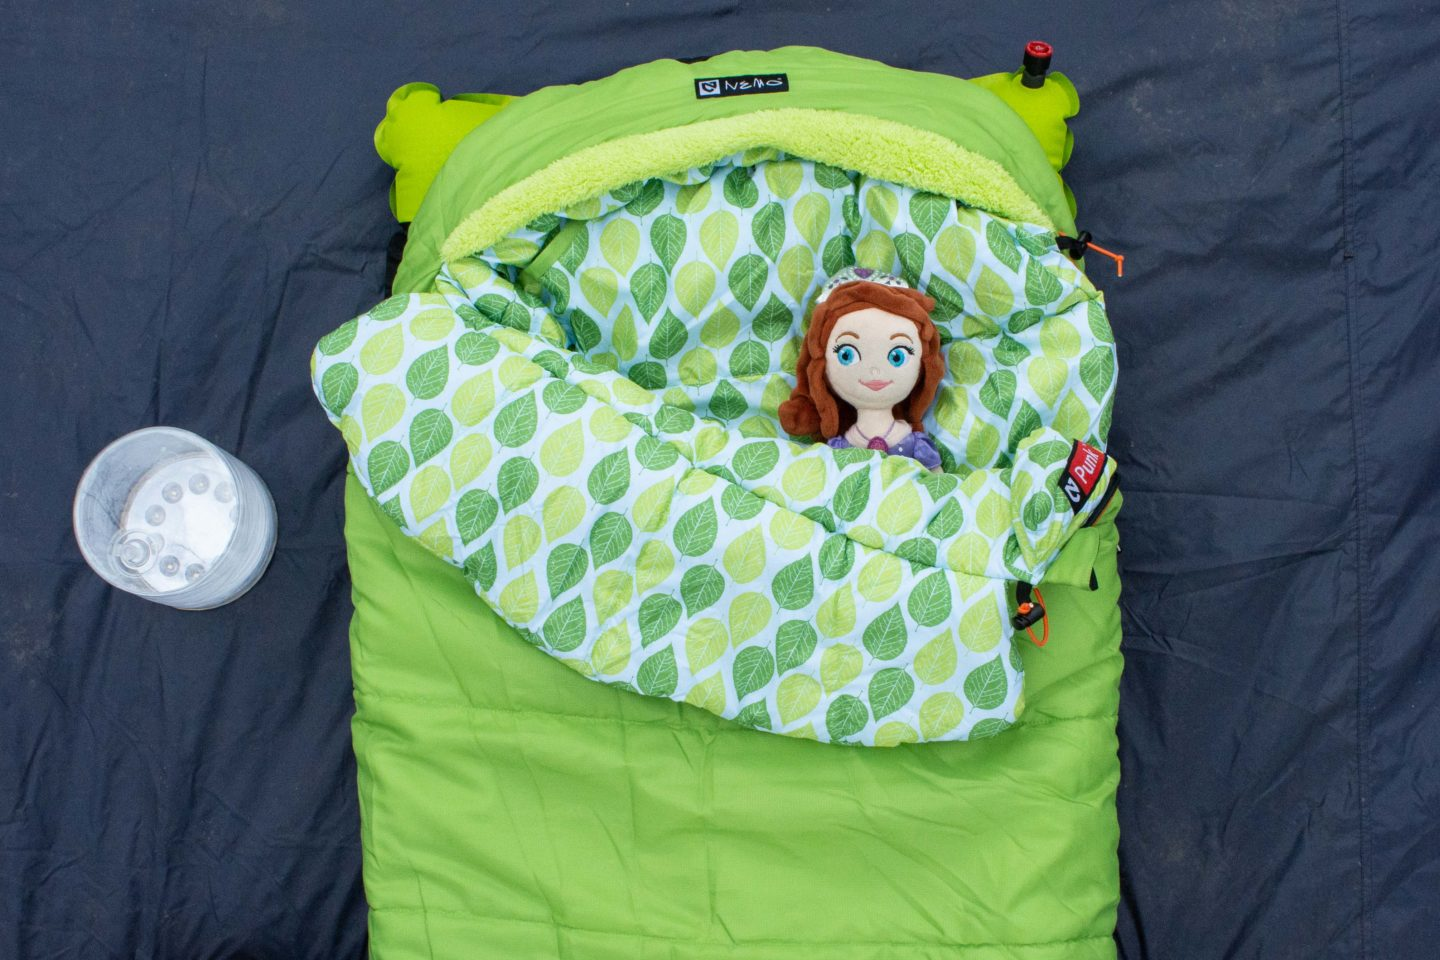 new arrivals 2d6ca dab88 Sleep Soundly - Review of Kids Sleeping Bags - Hike it Baby